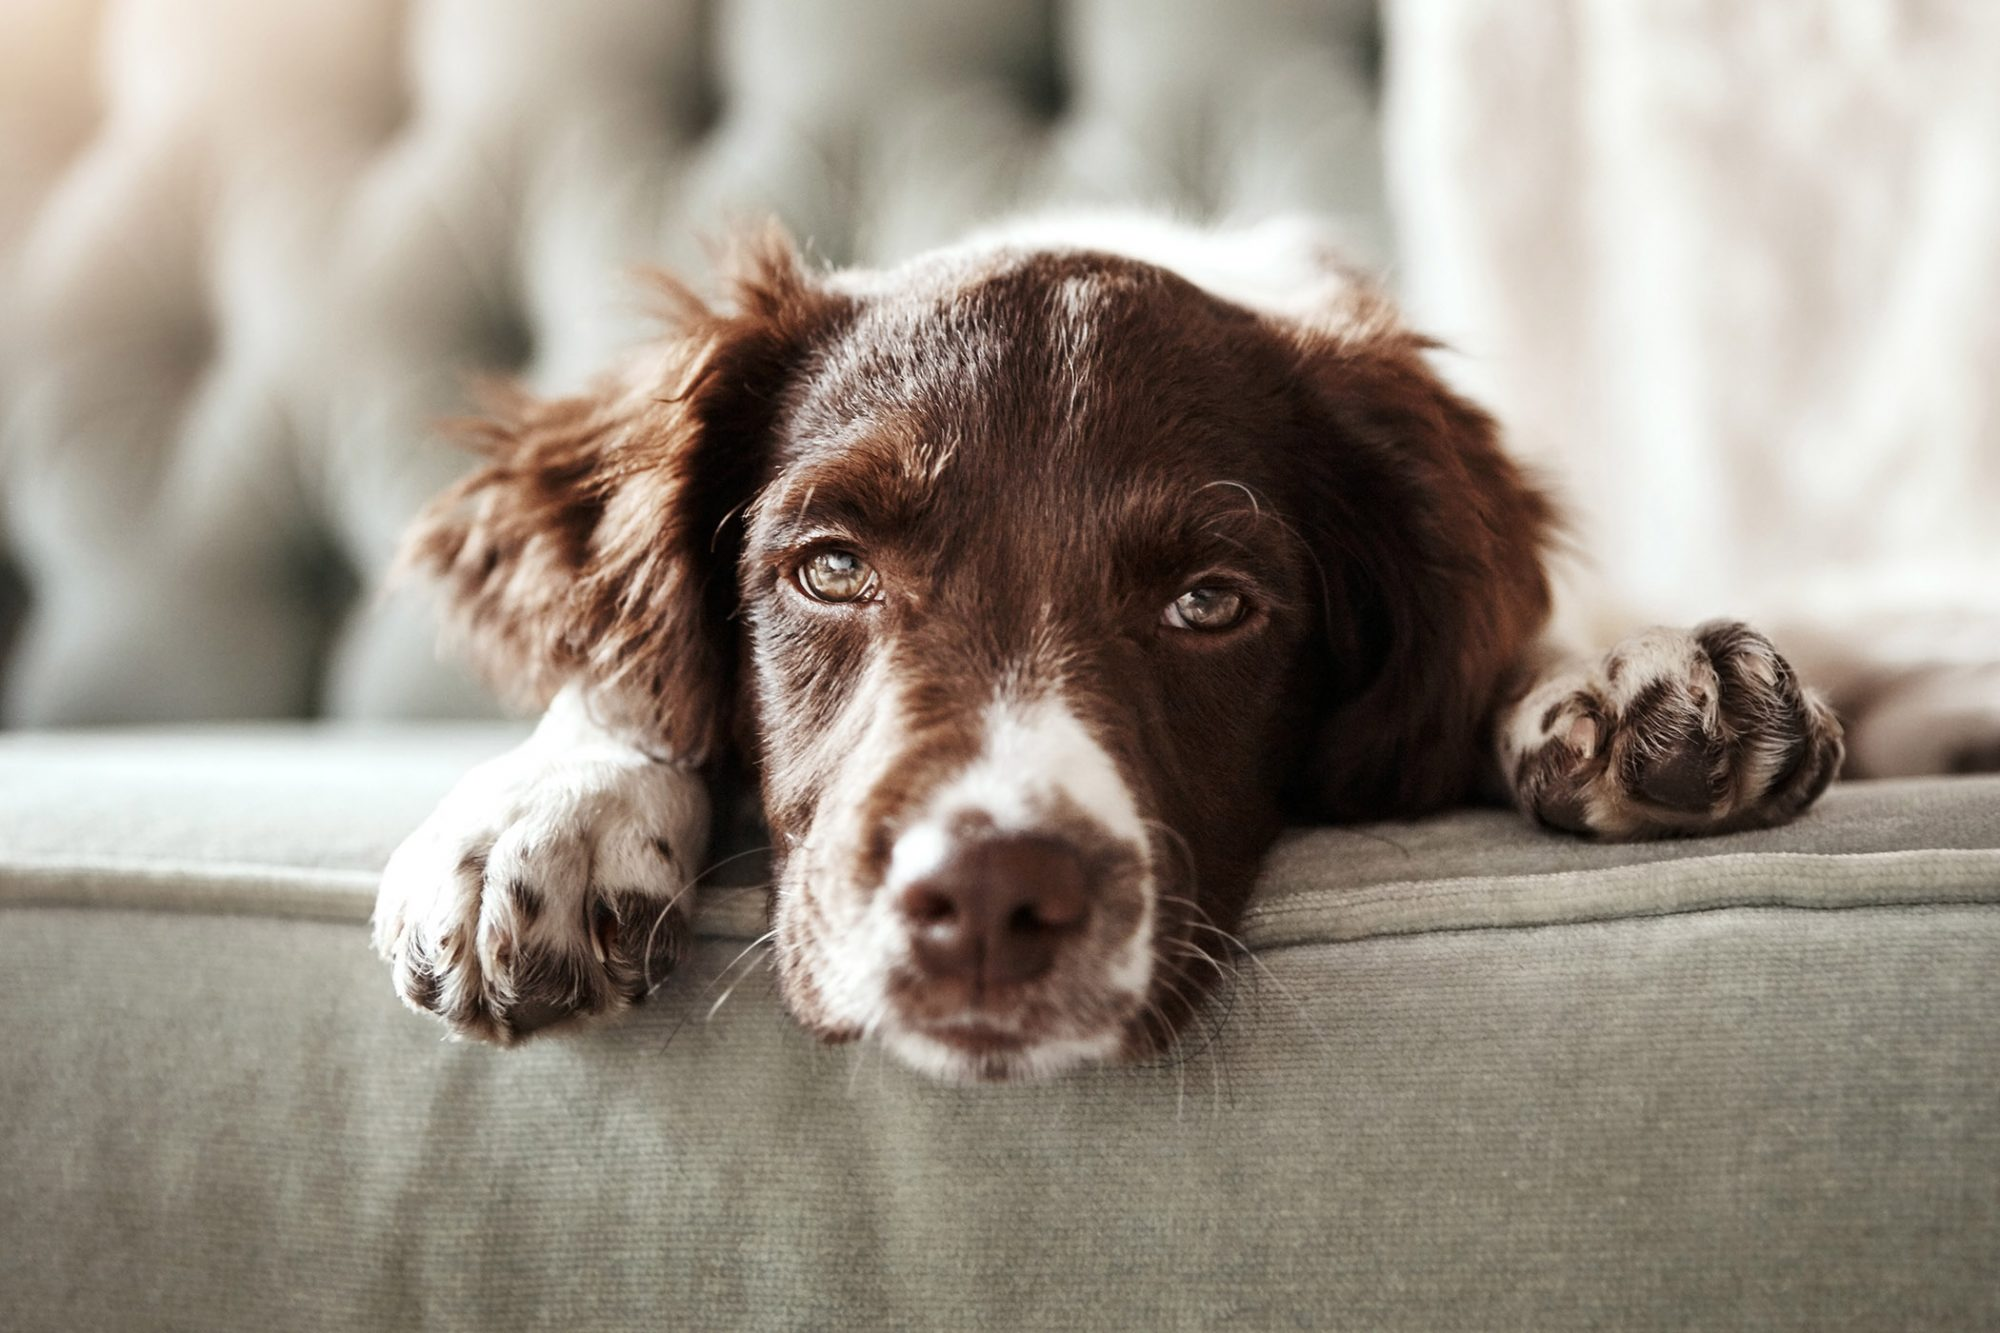 english springer spaniel lying on couch facing camera